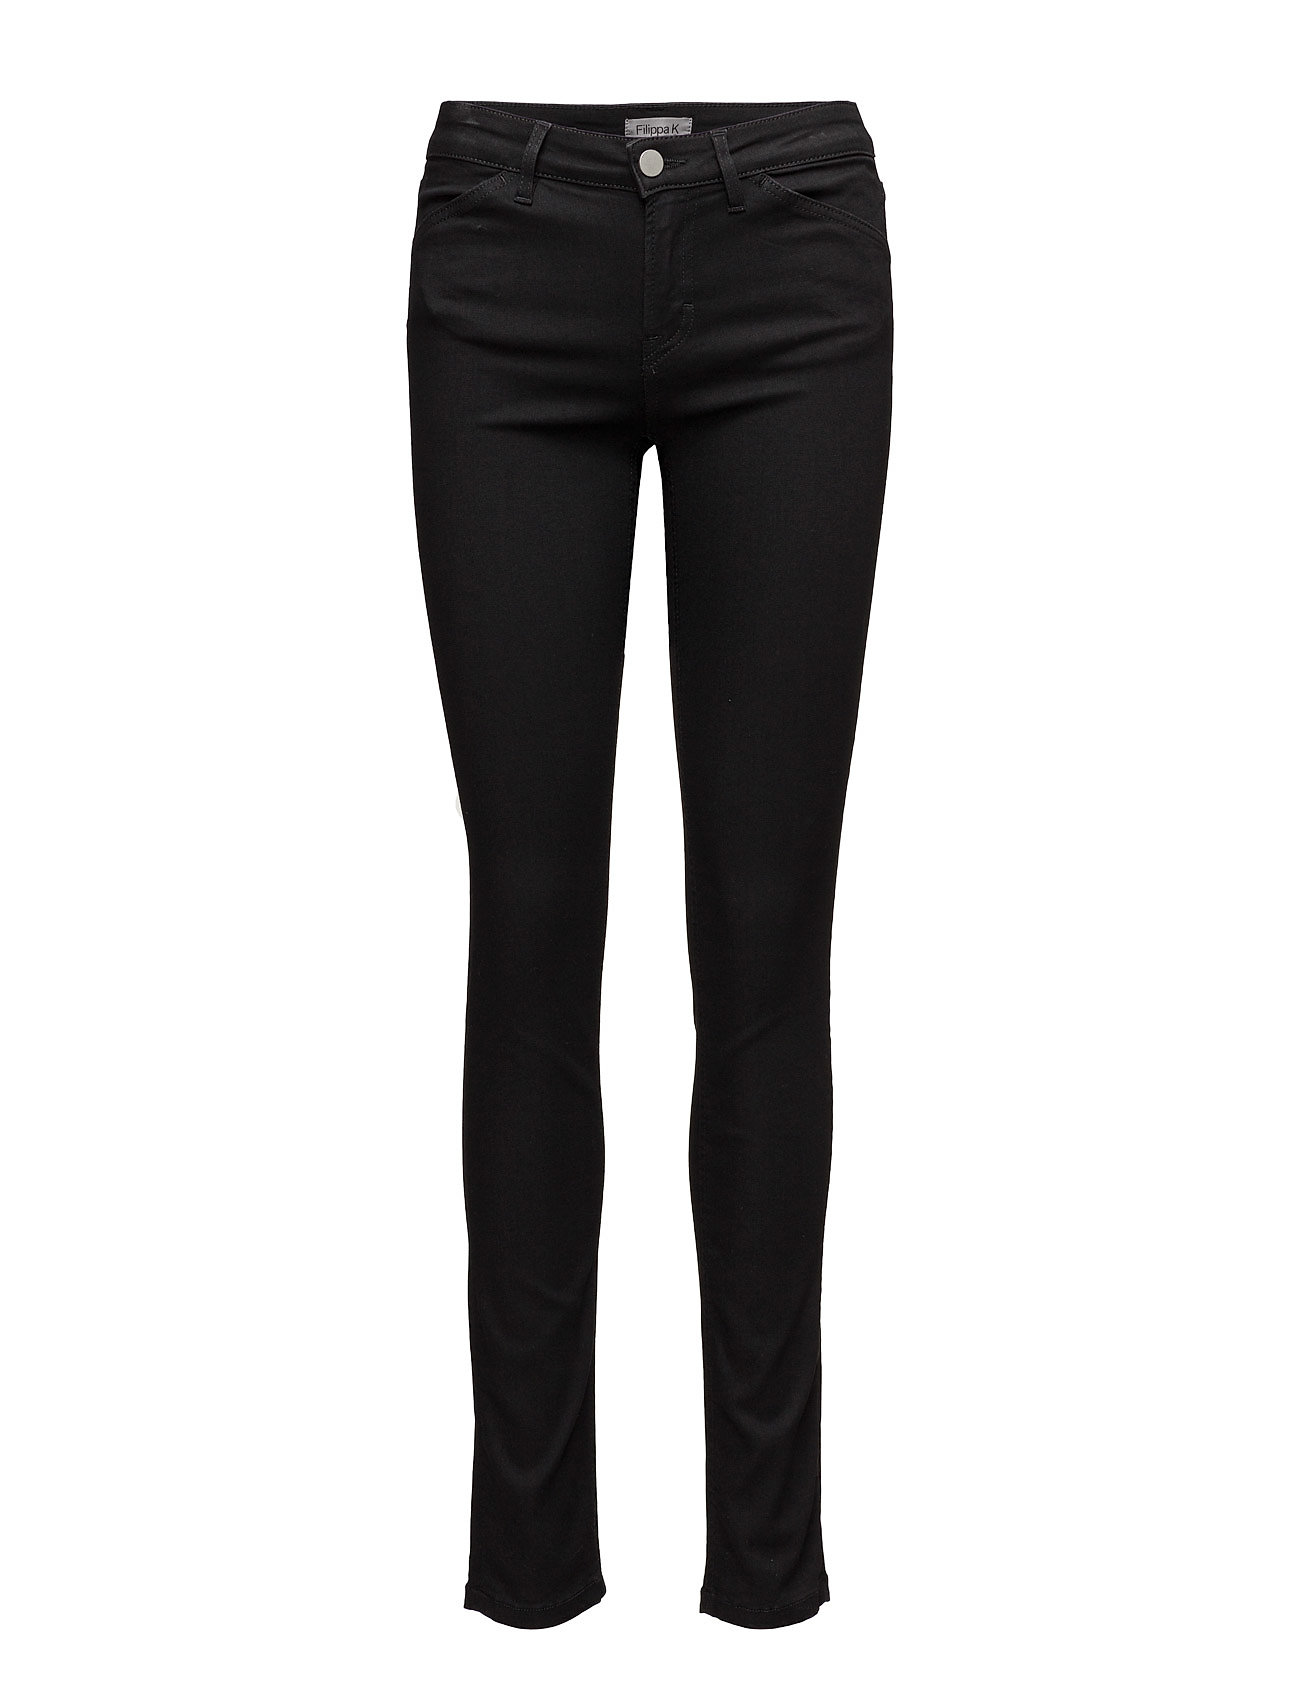 Filippa K Patti Stretch Jeans - BLACK